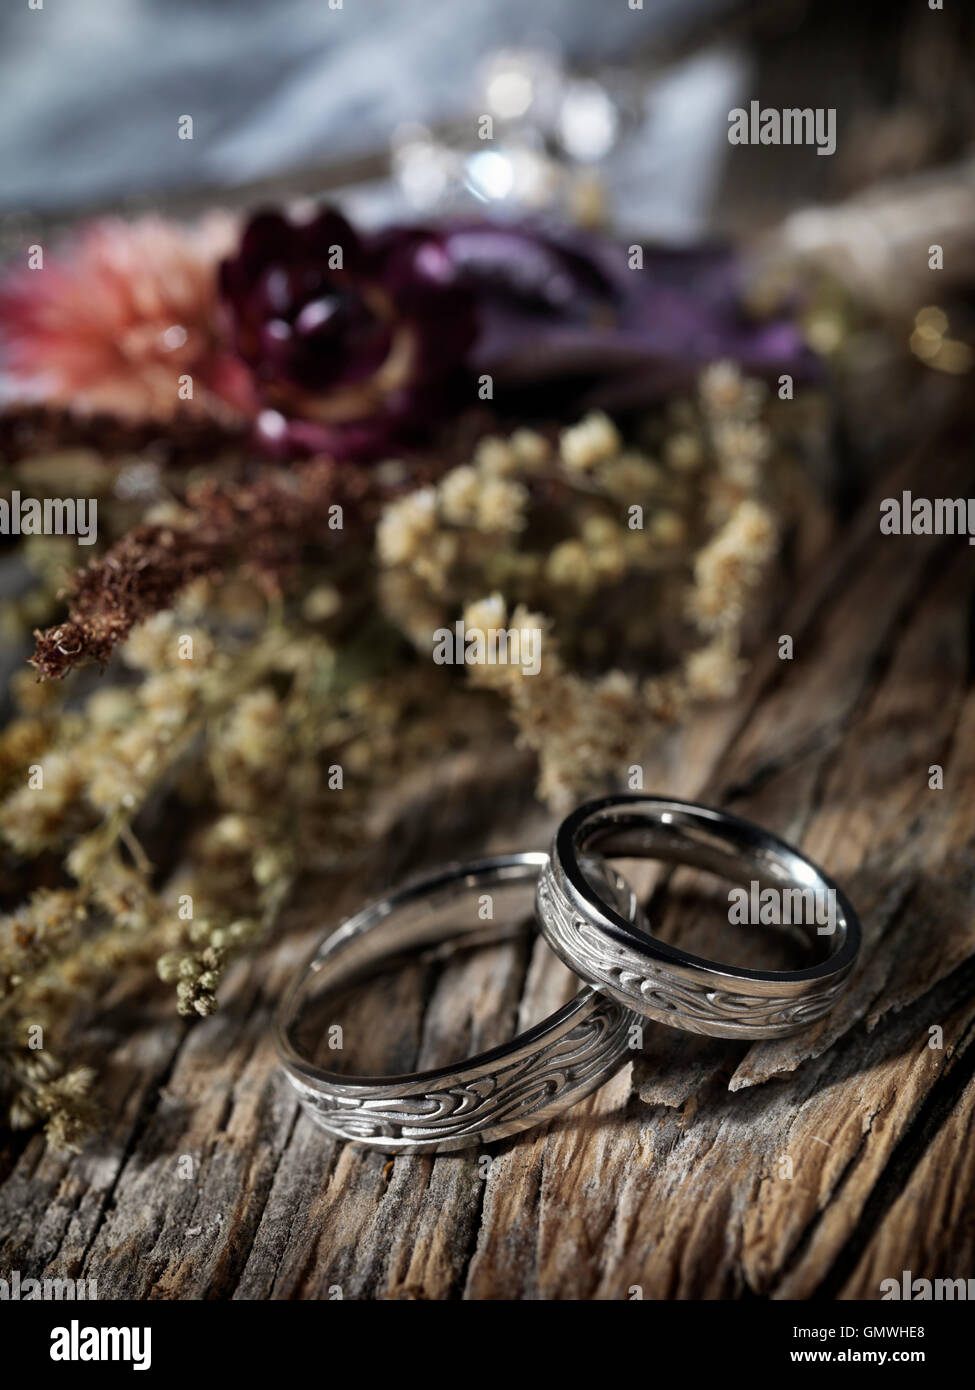 White gold wedding rings with Celtic design and wild dried flowers on rustic background, artistic marriage still - Stock Image